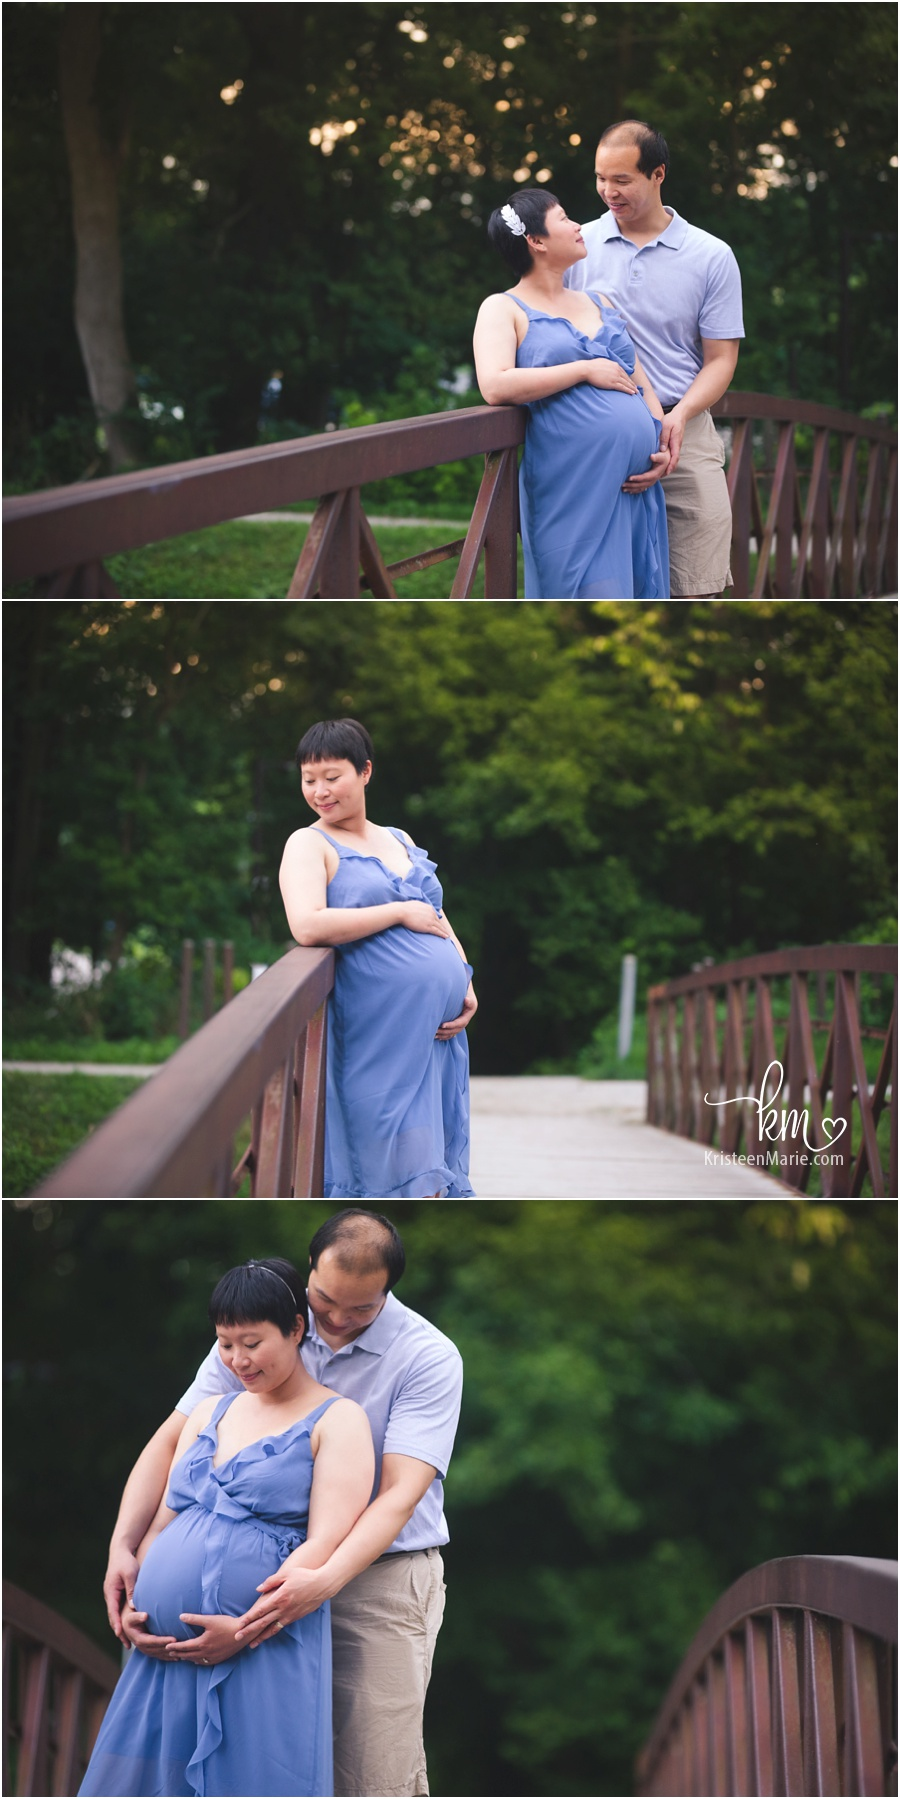 great maternity photography poses